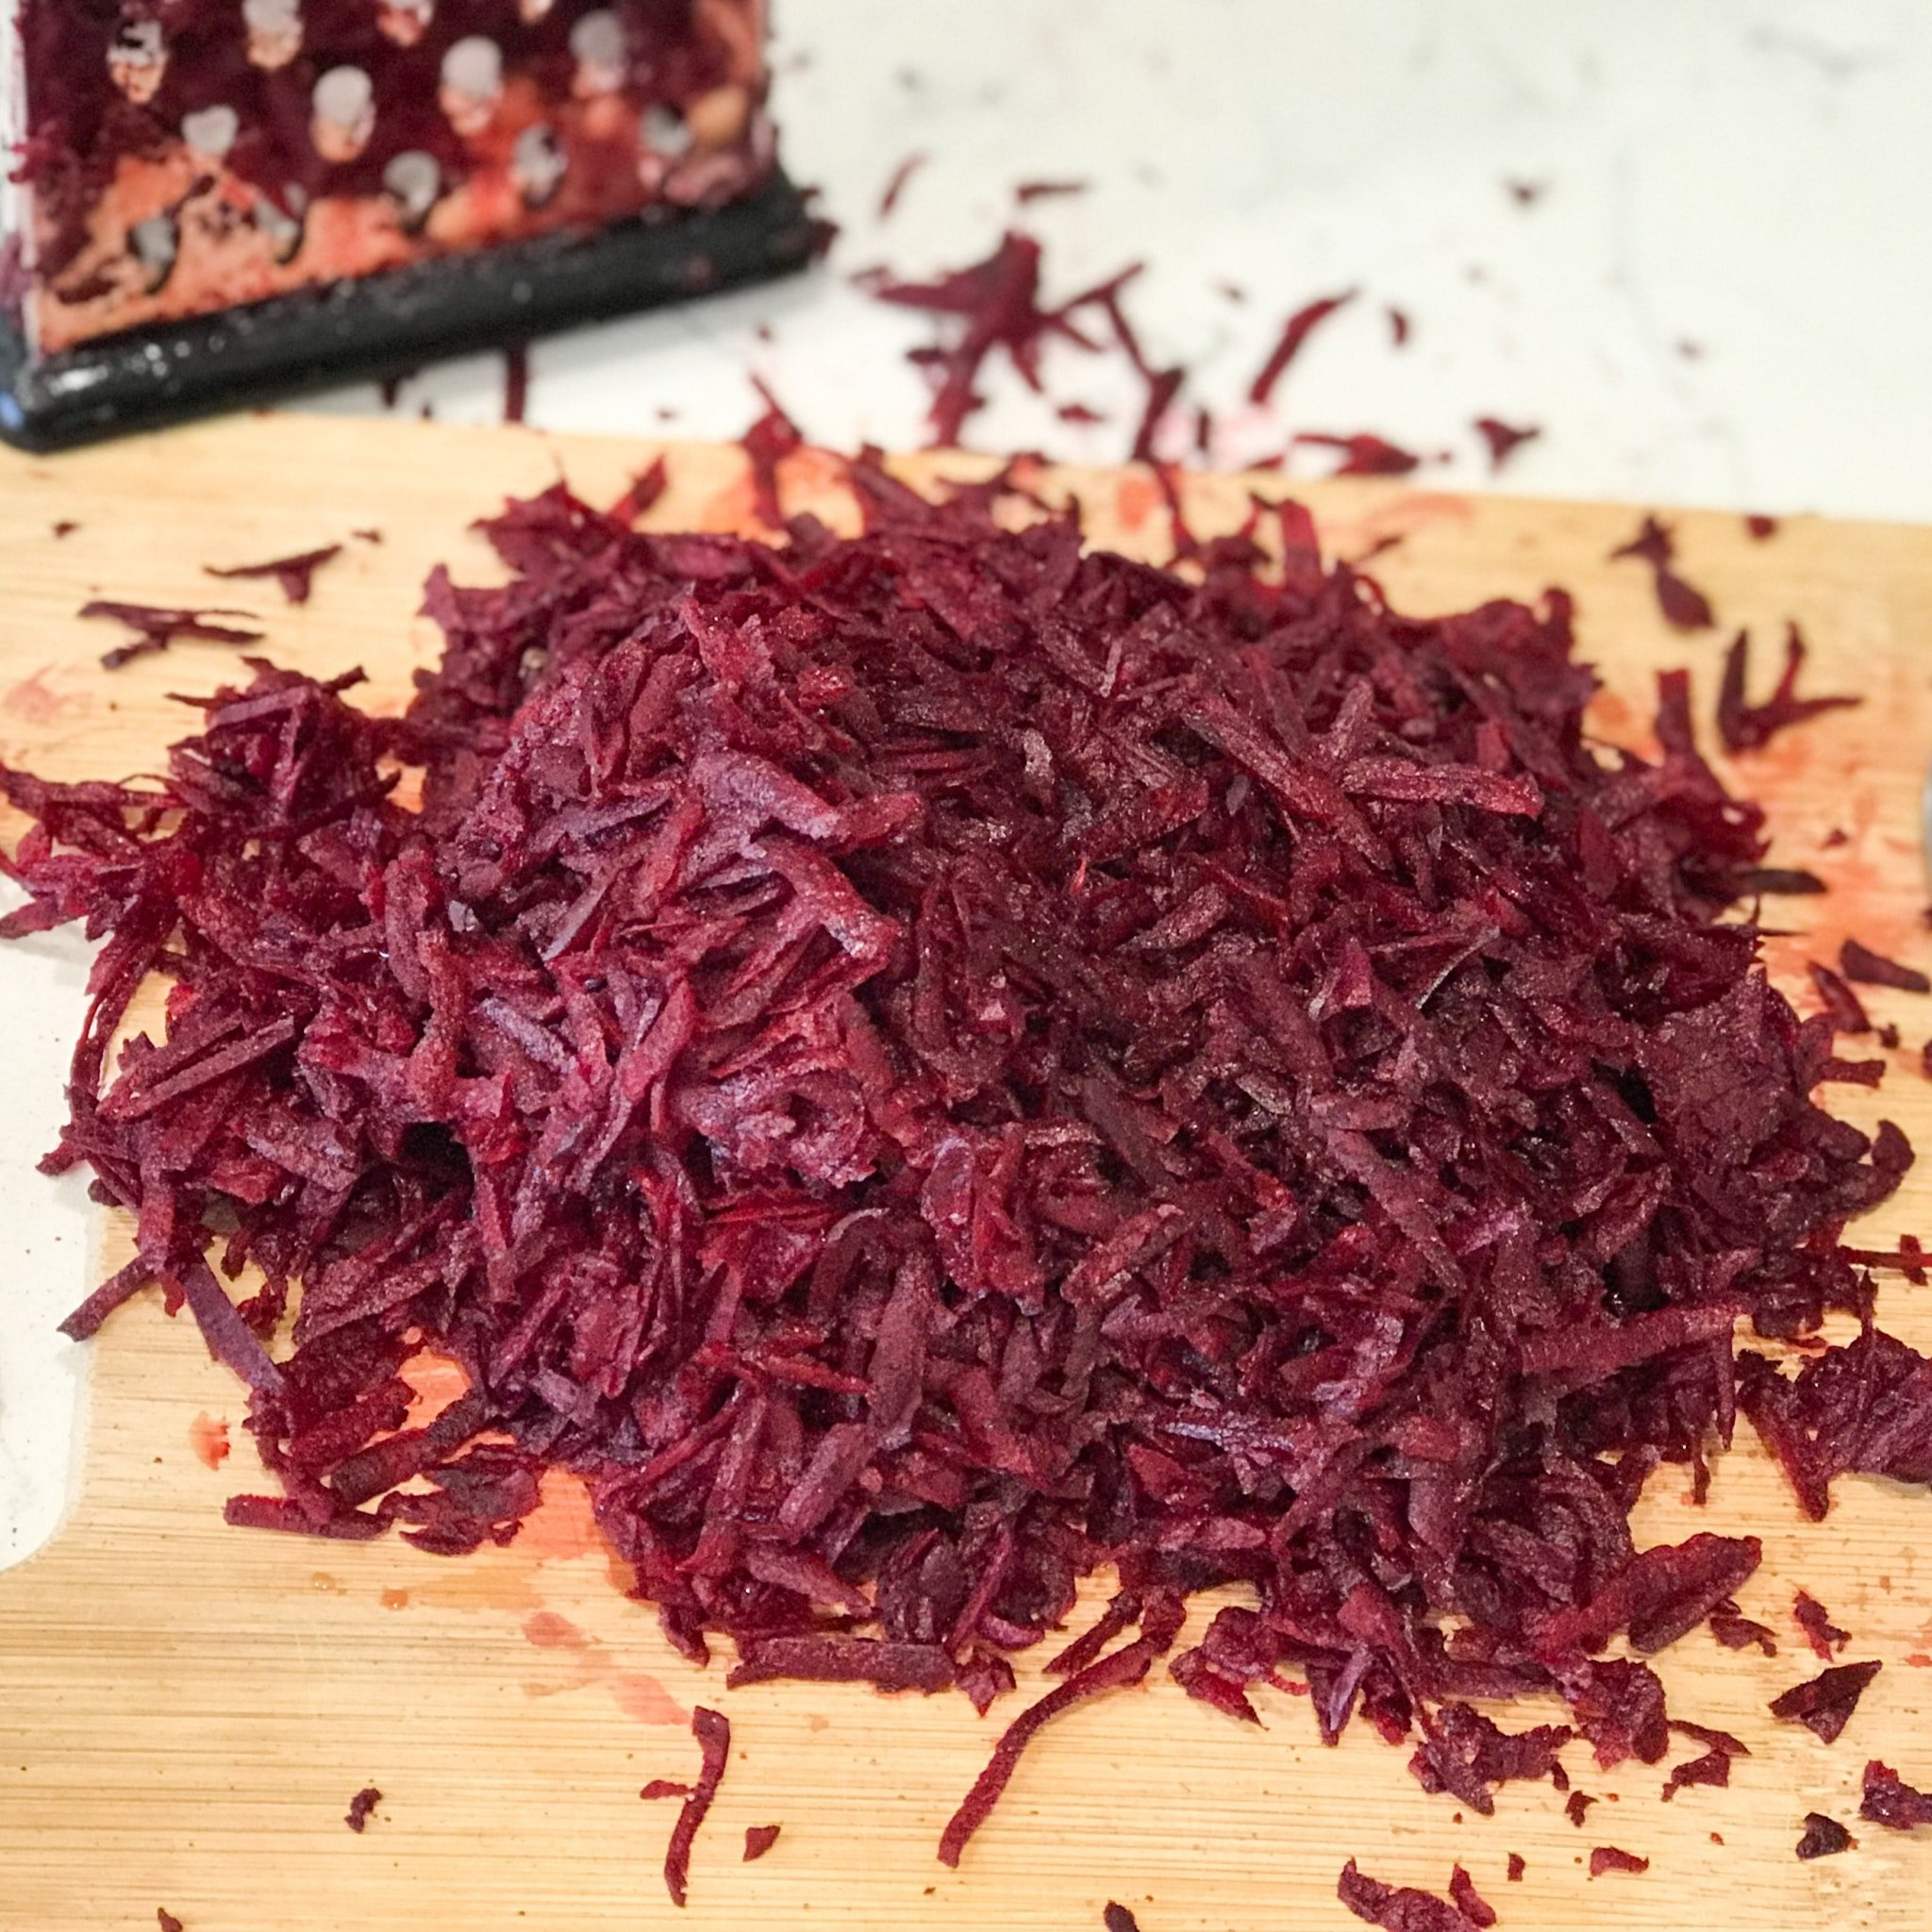 Grated beets is on the cutting board